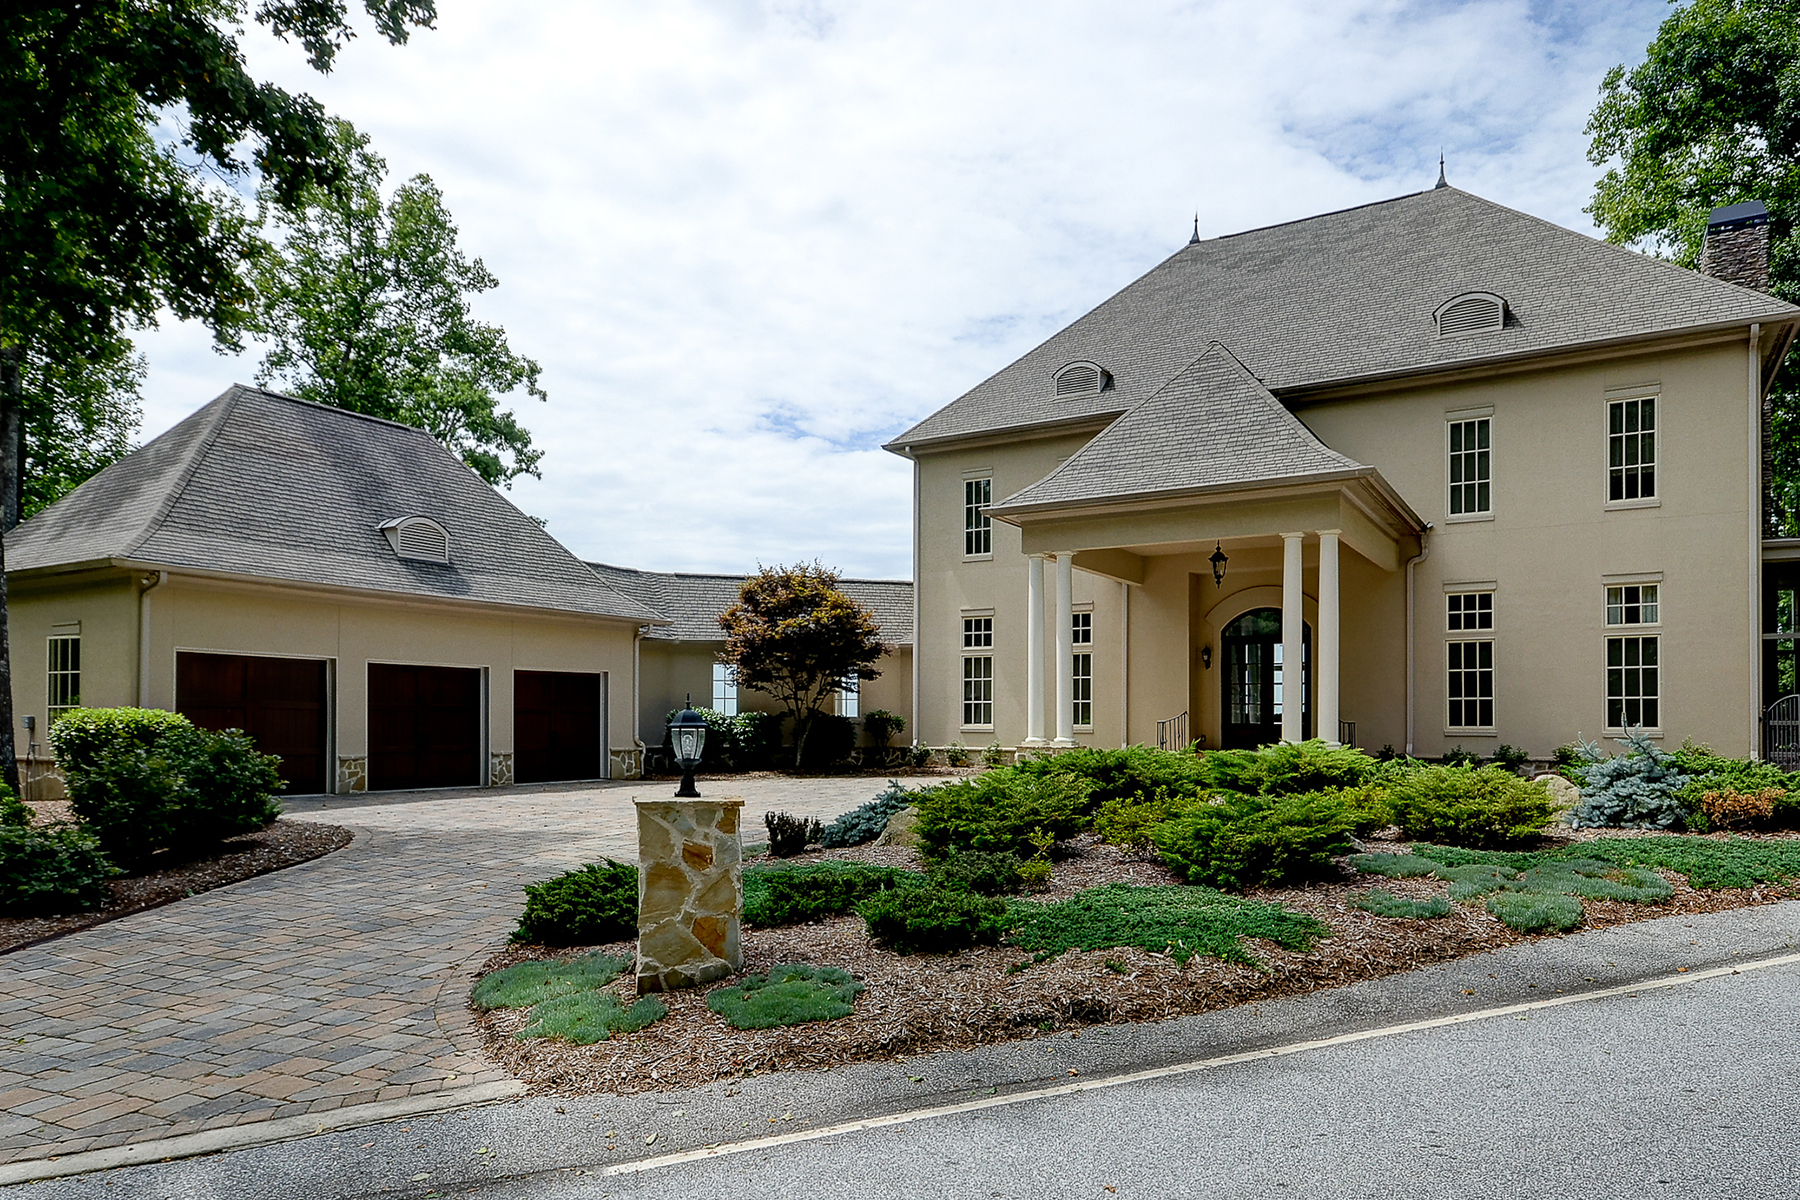 Single Family Home for Sale at THE CLIFFS AT GLASSY 29 Falling Star Way, Landrum, South Carolina 29356 United States